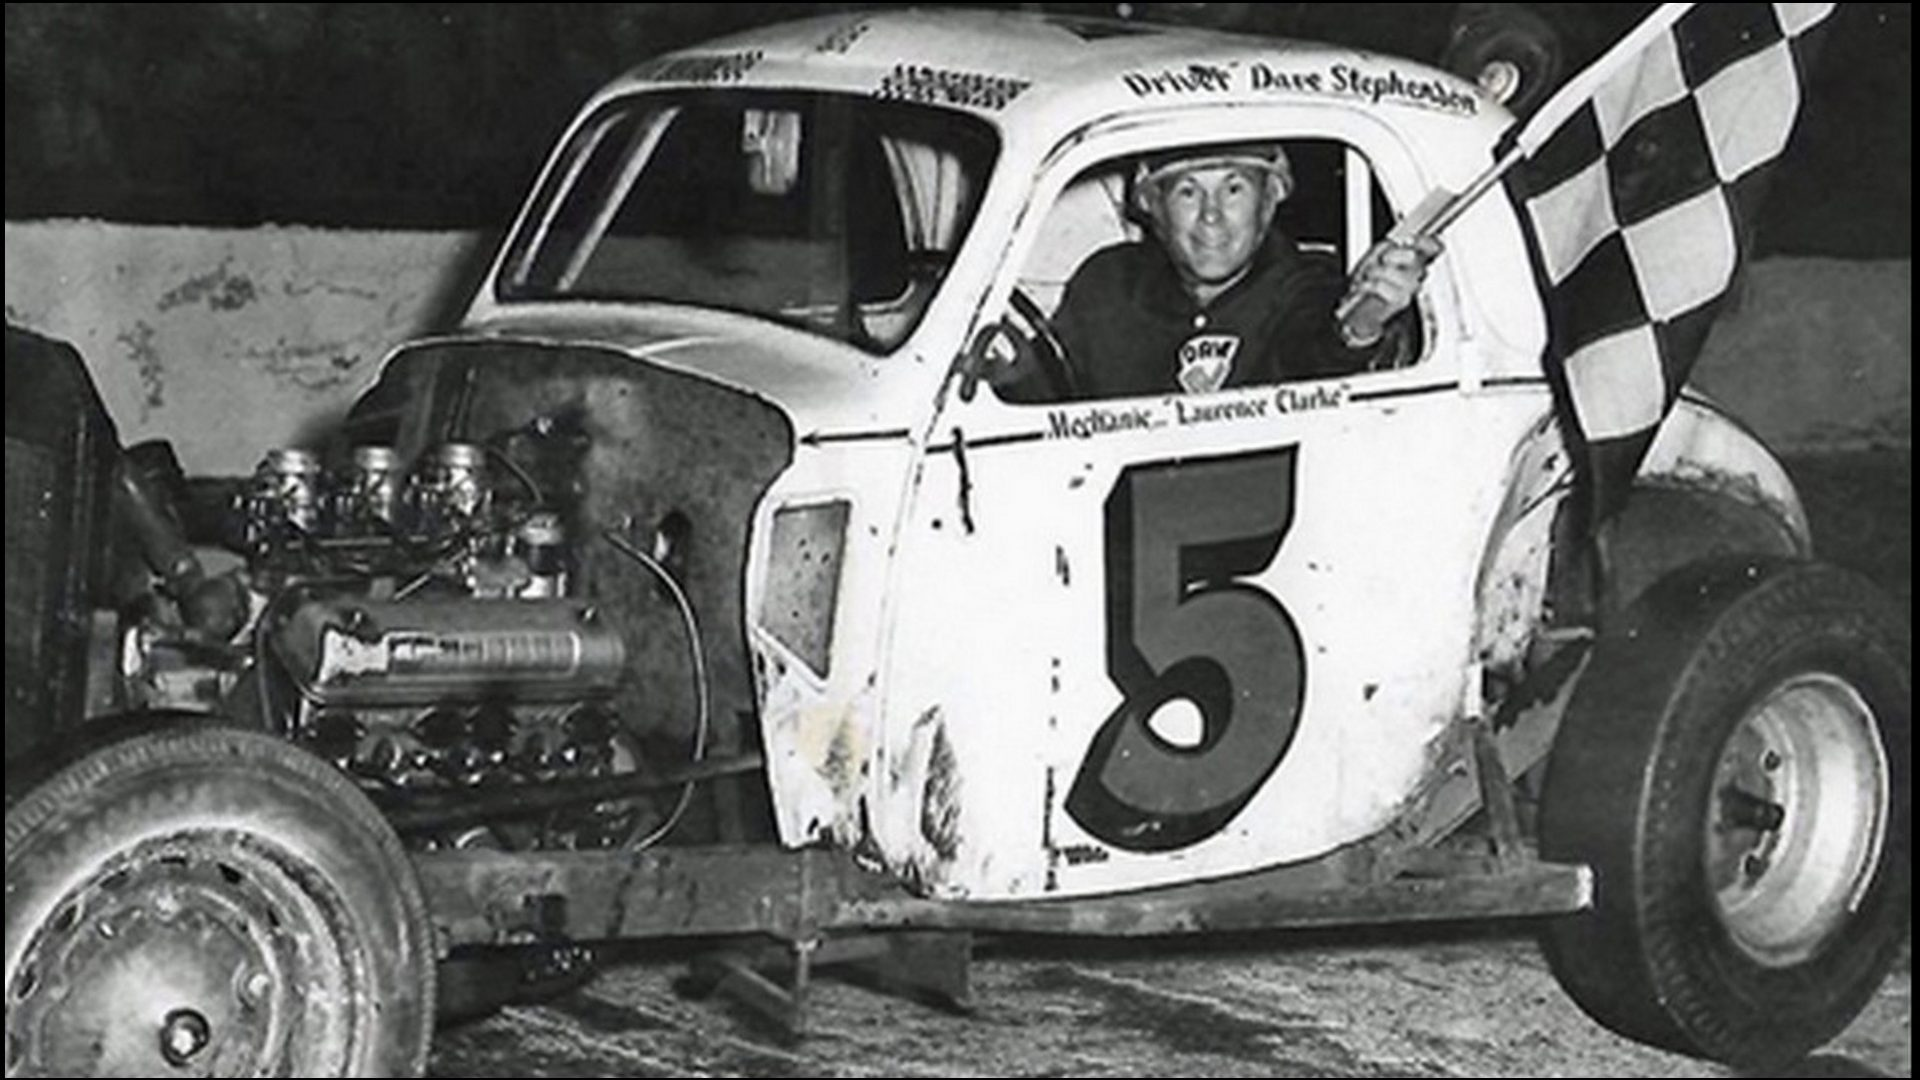 Dave-Stephensoon-takes-the-win-at-Pinecrest-Speedway.-Courtesy-of-Biull-Stephenson